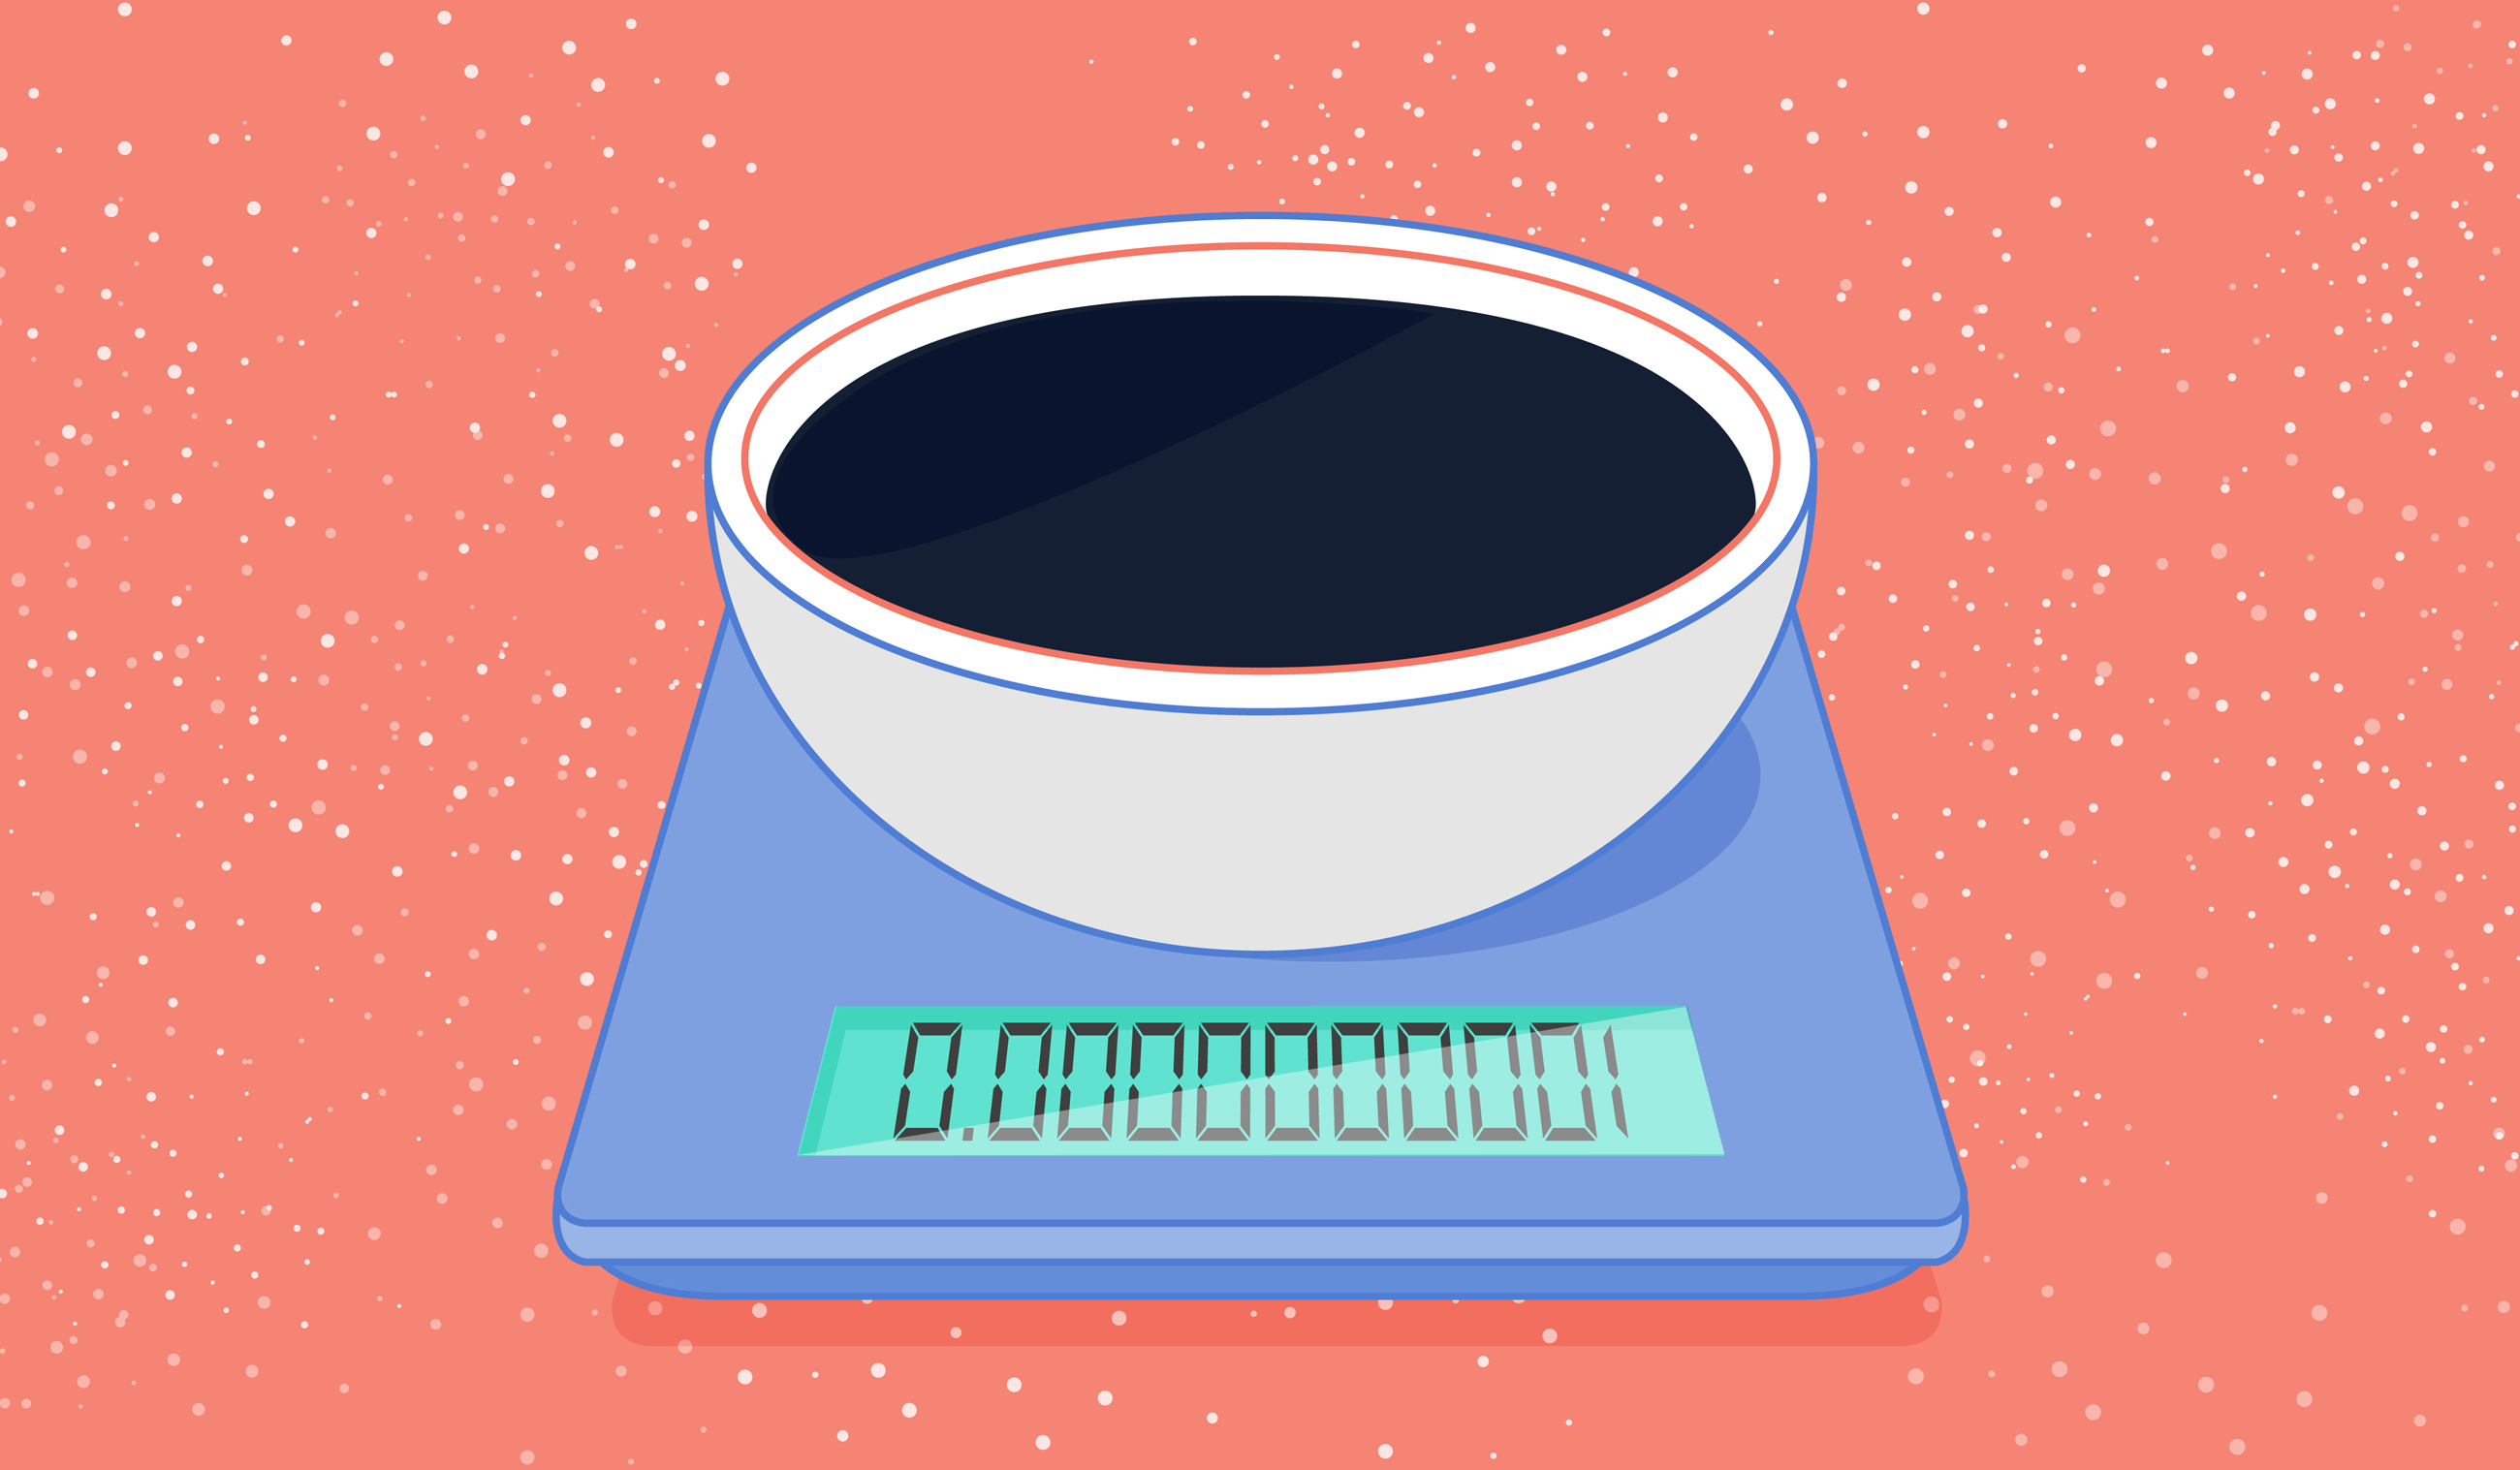 Illustration of a bowl of dark energy on a weighing scale